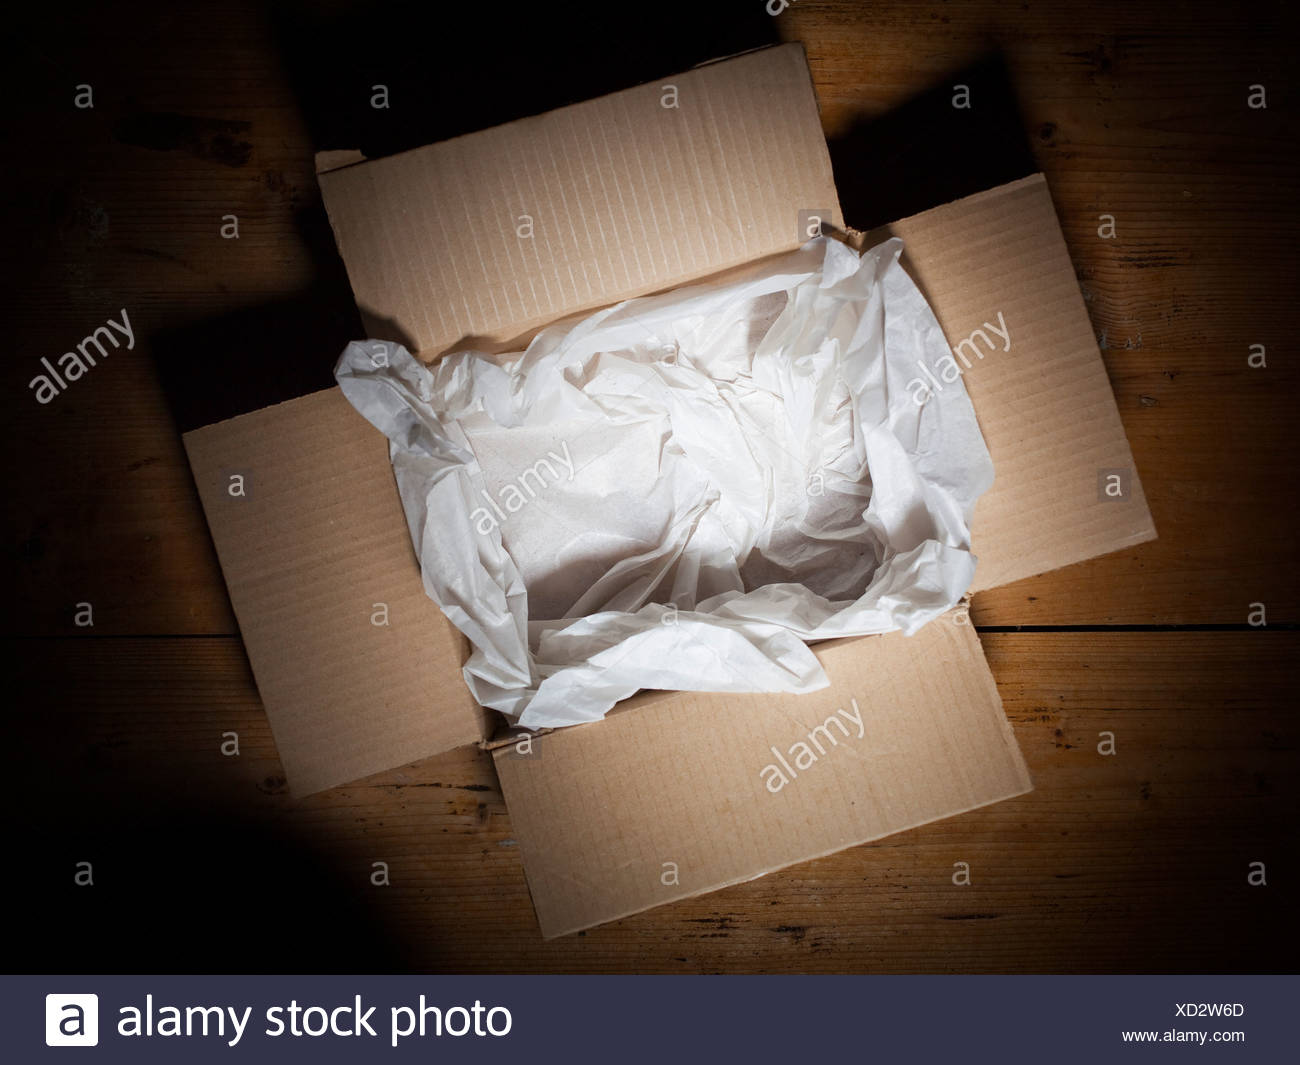 Opened box - Stock Image